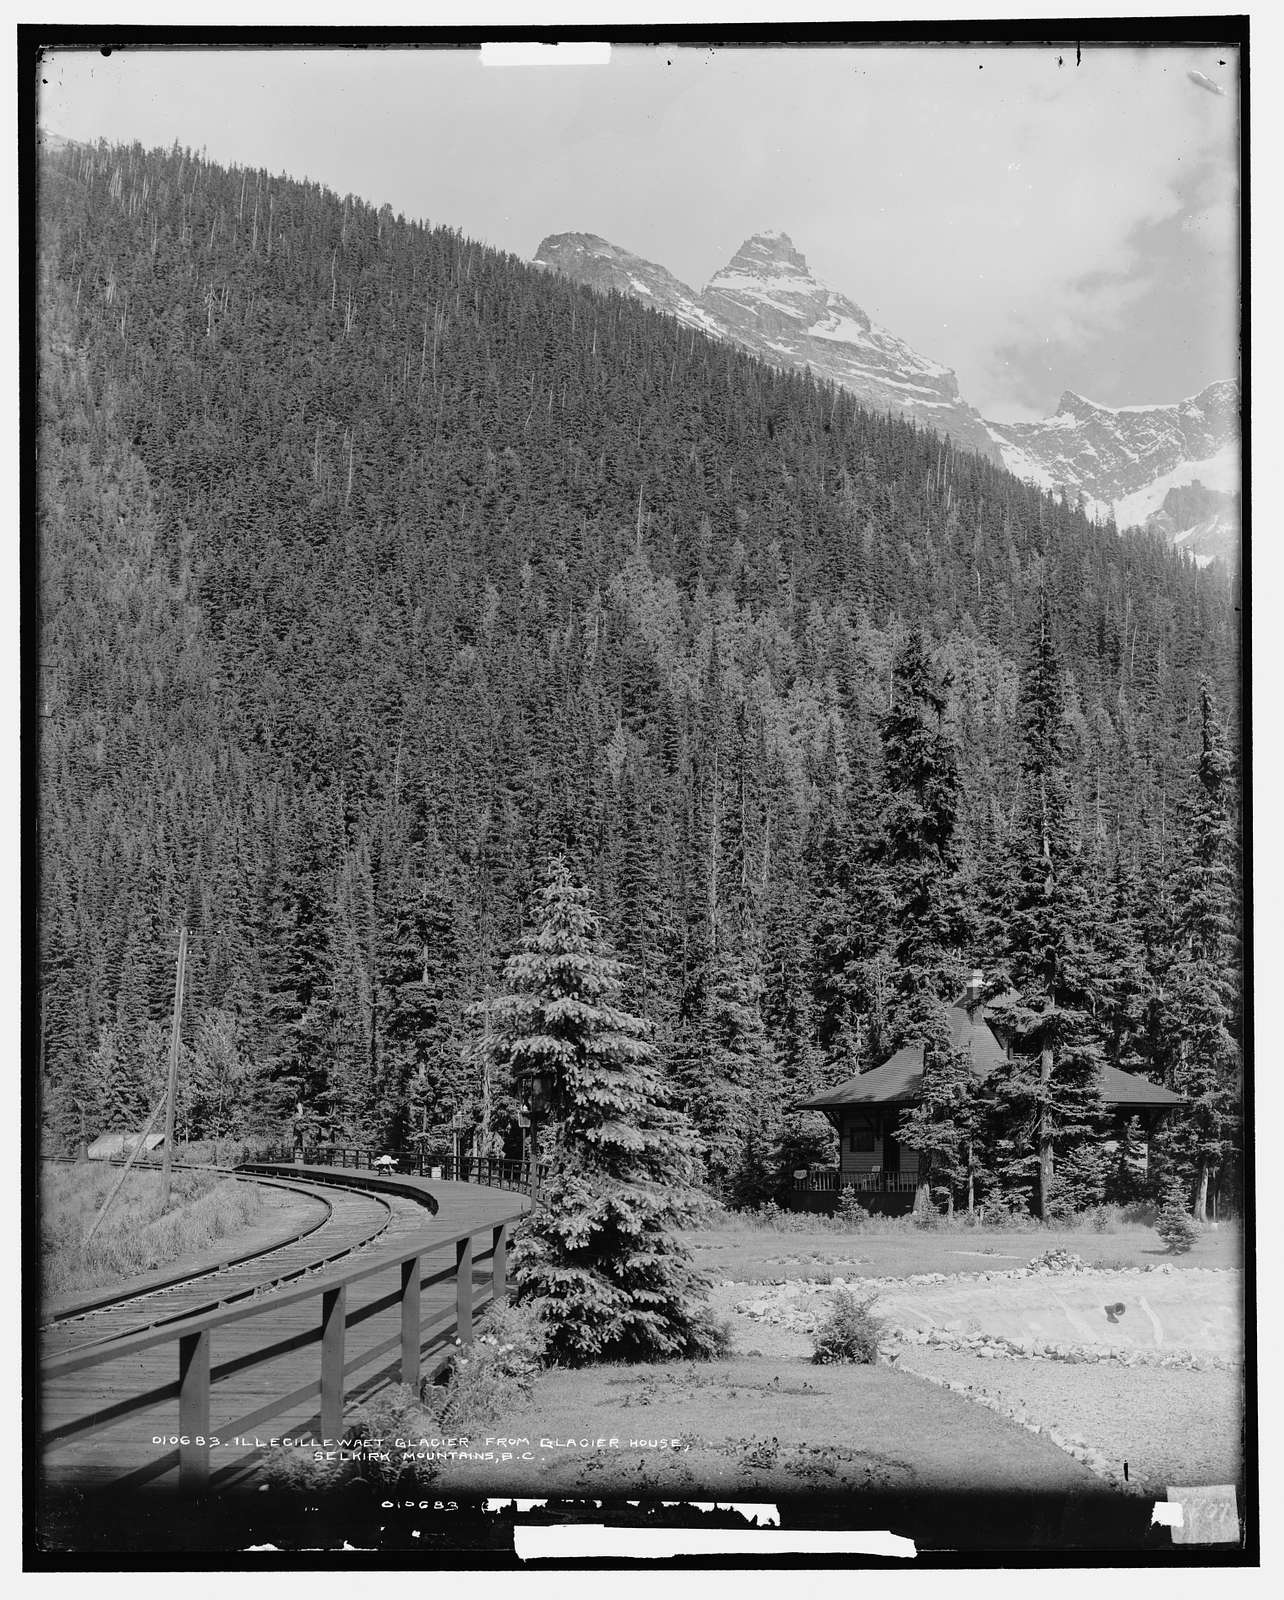 Illecillewaet Glacier from Glacier House, Selkirk Mountains, B.C